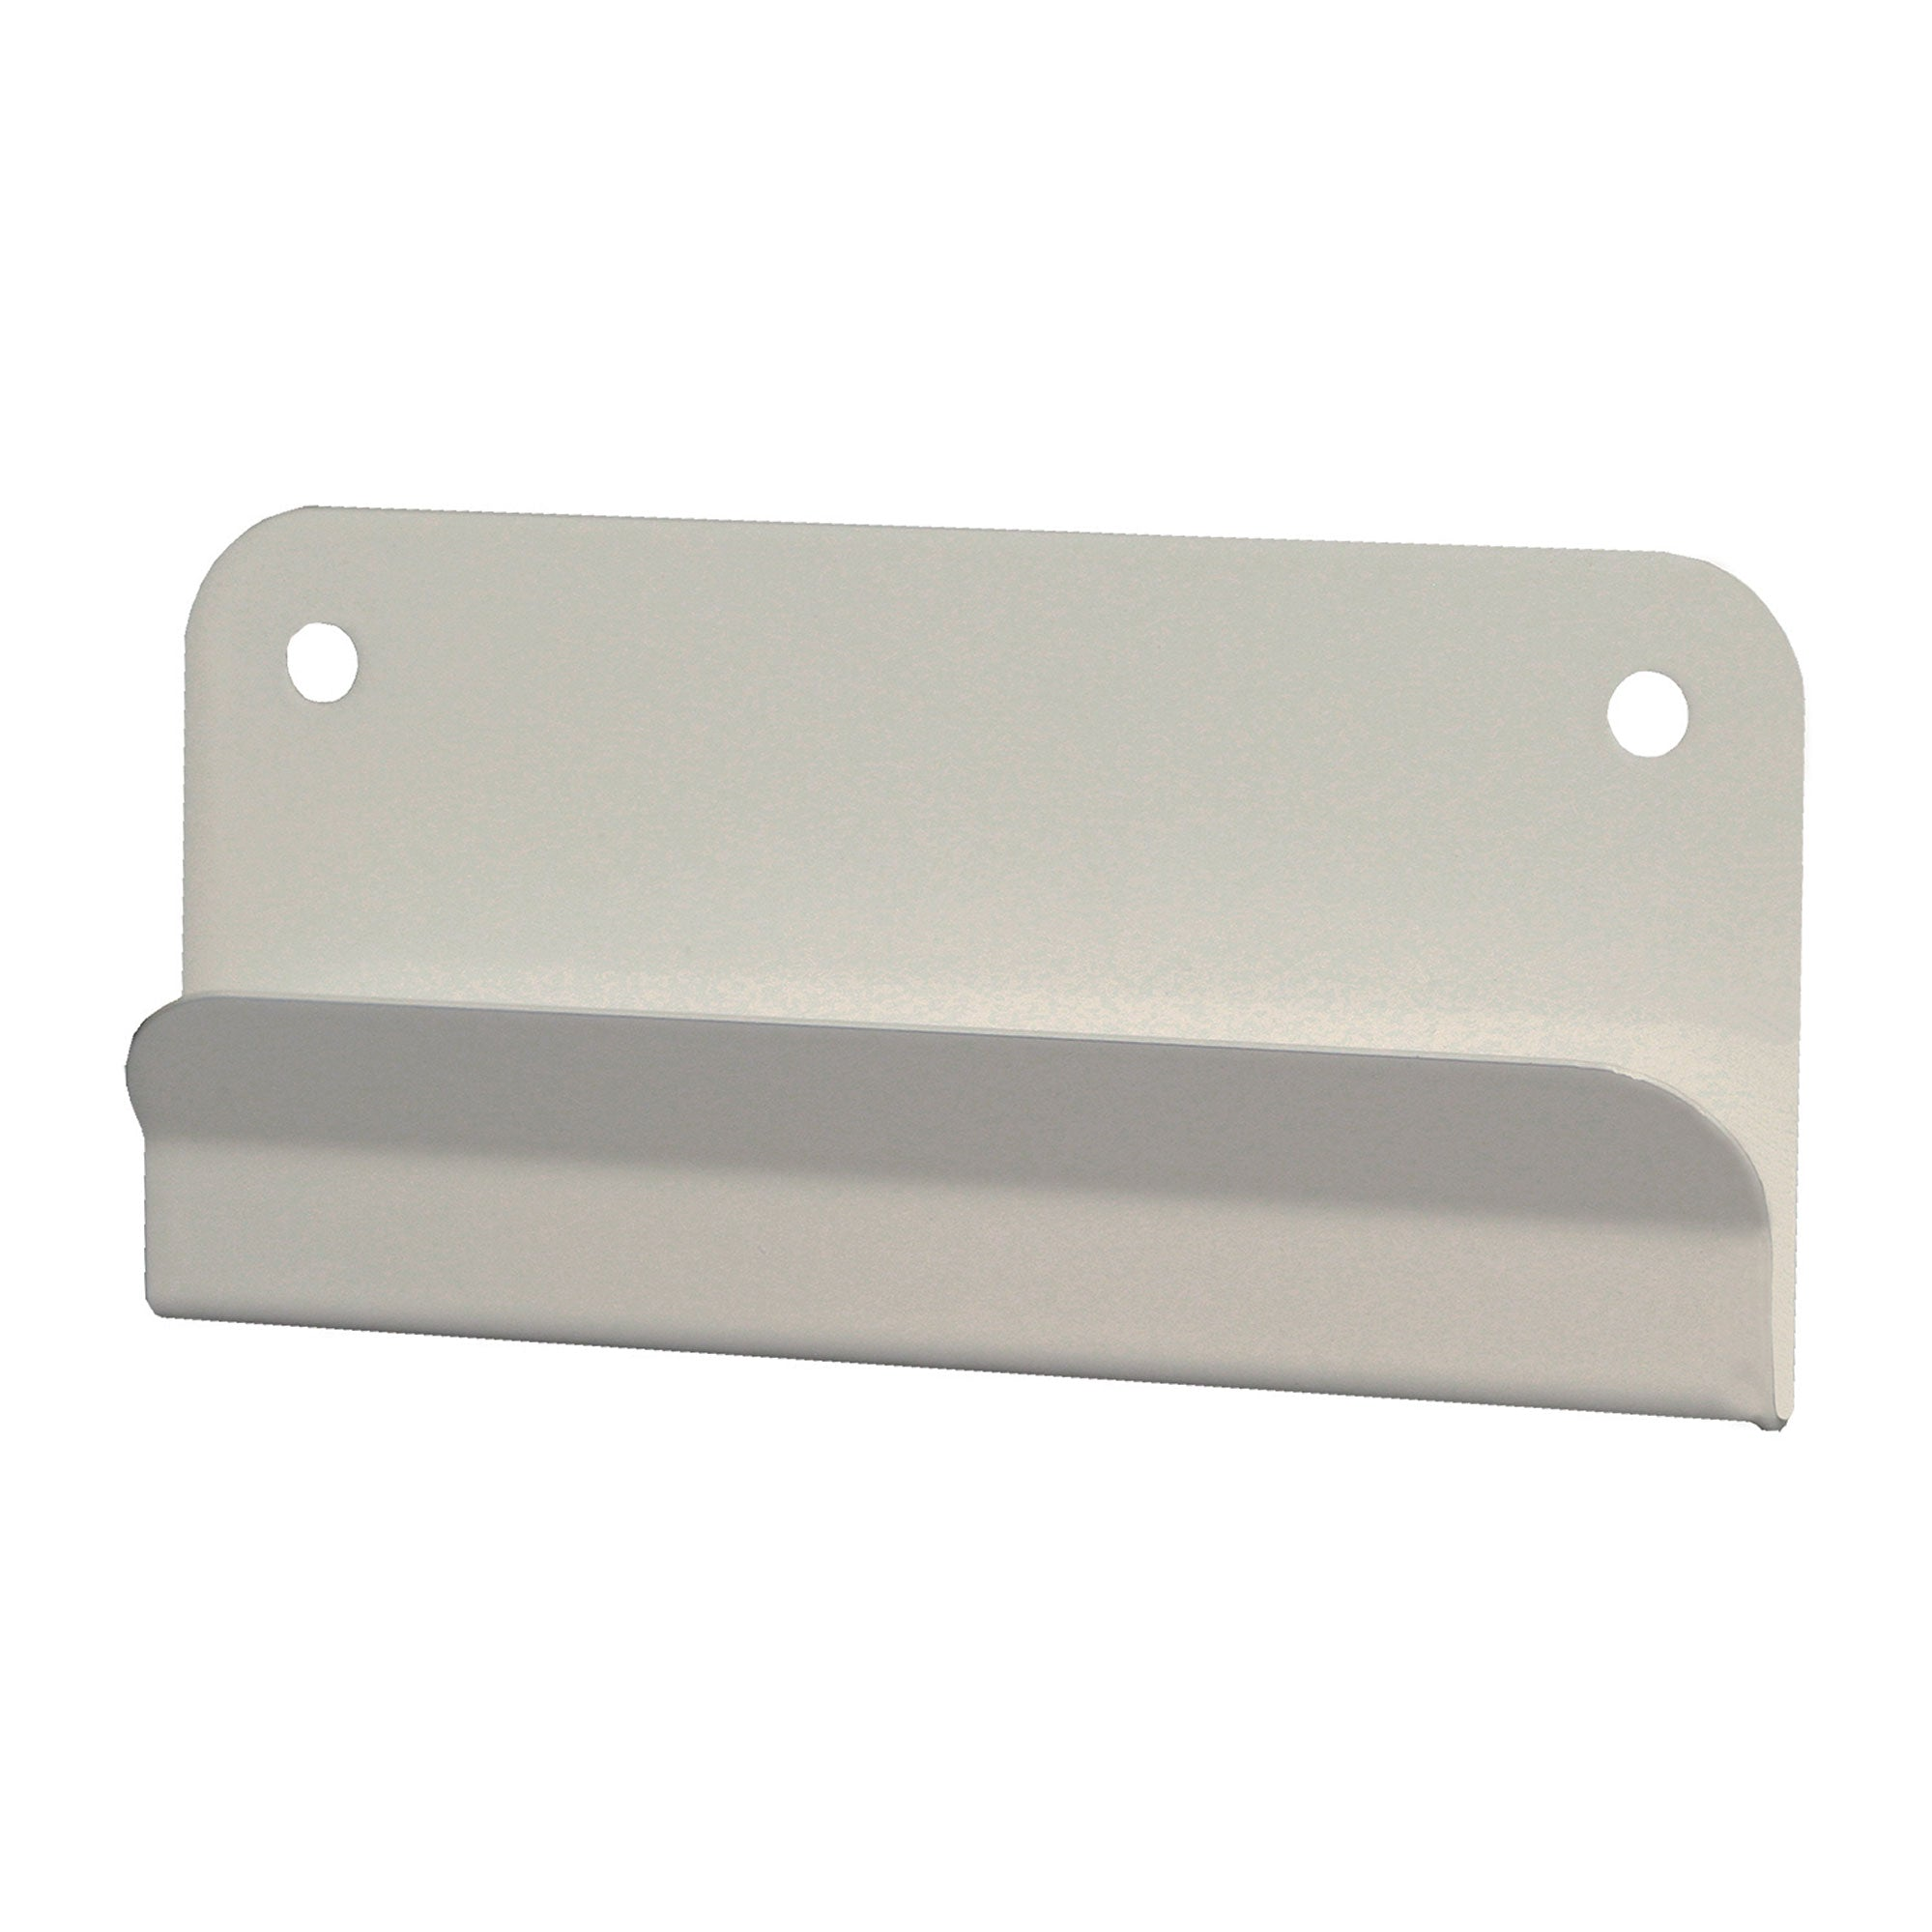 Bowman Steel Wall Hanger for Isolation Stations